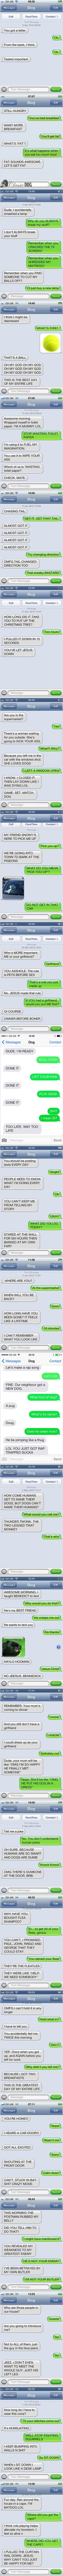 Dogs are considered by many to be man's best friend, and many of us love to wonder about exactly what our loyal and energetic companions are thinking about or what they would say to us if they could. The Text From Dog Tumblr offers answers to these questions with a modern twist – as the name suggests, the blog is all about the imaginary SMS exchange between a dog and his owner.